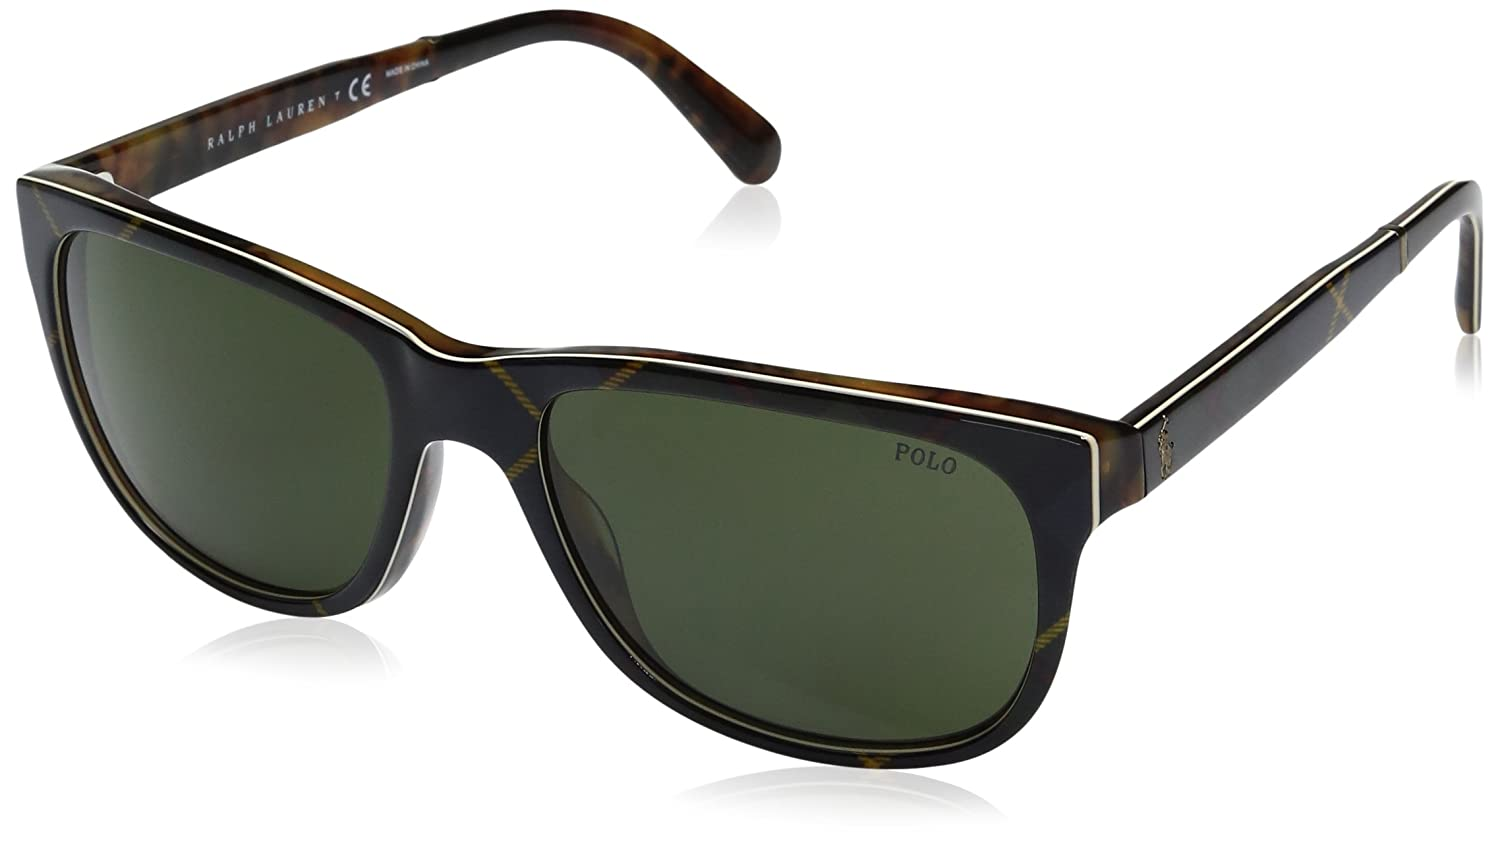 8208a7c79417 Amazon.com: Polo Ralph Lauren Men's Acetate Man Wayfarer Sunglasses, Dress  Gordon Tartan, 58 mm: Clothing